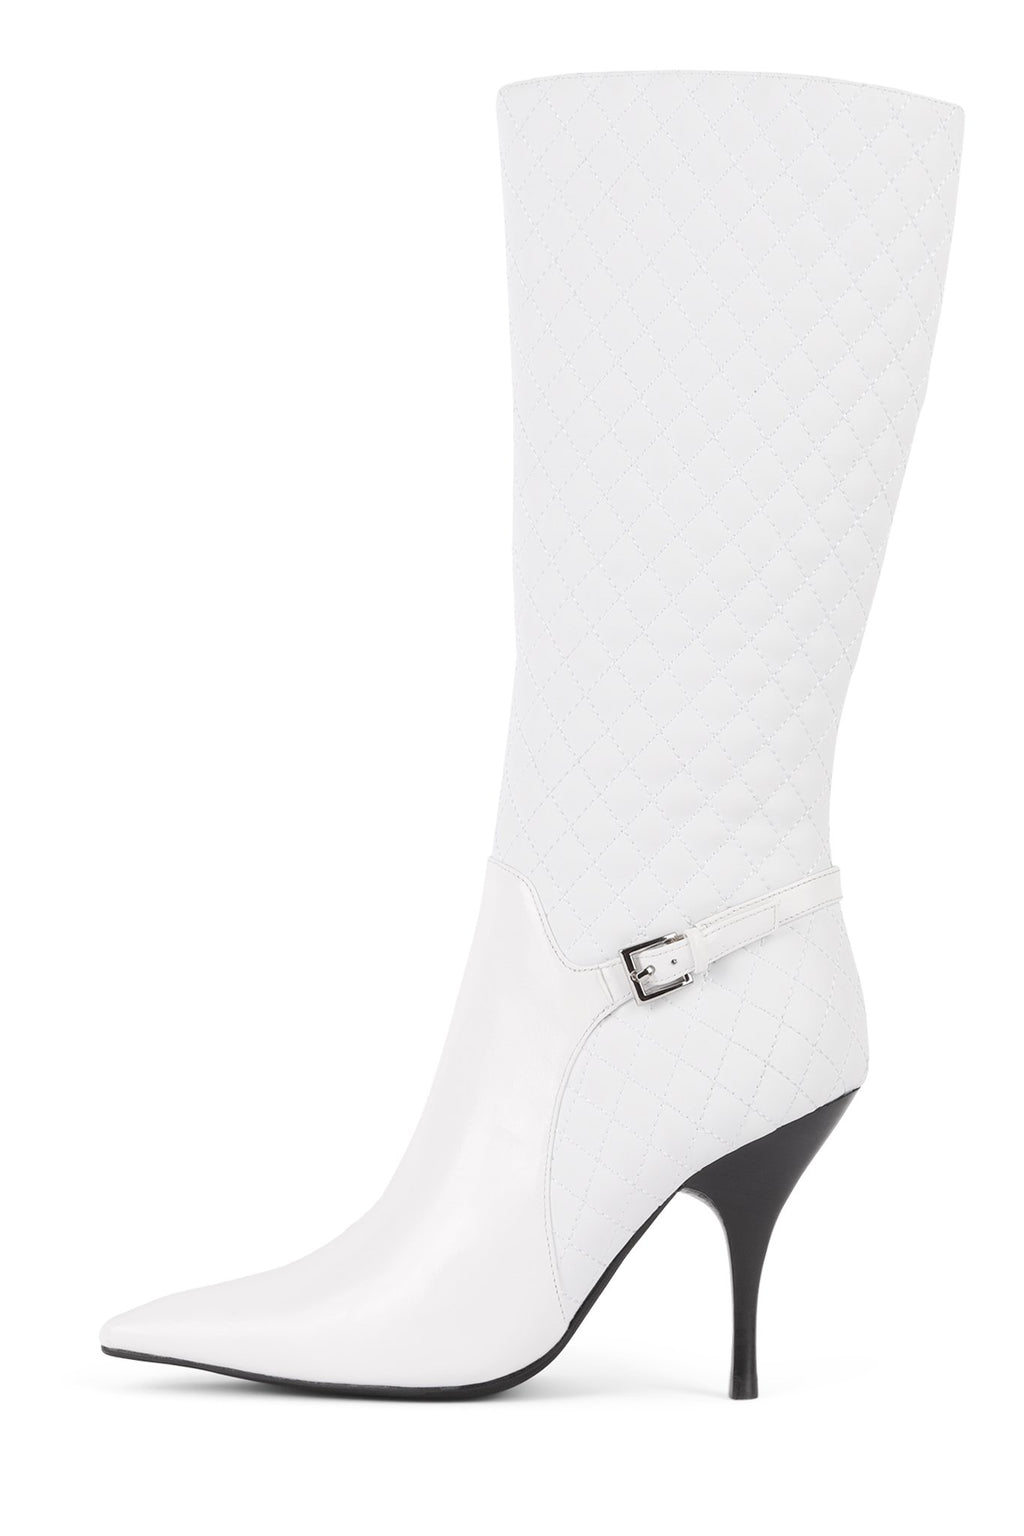 BISSEE Knee-High Boot STRATEGY White Patent White 6